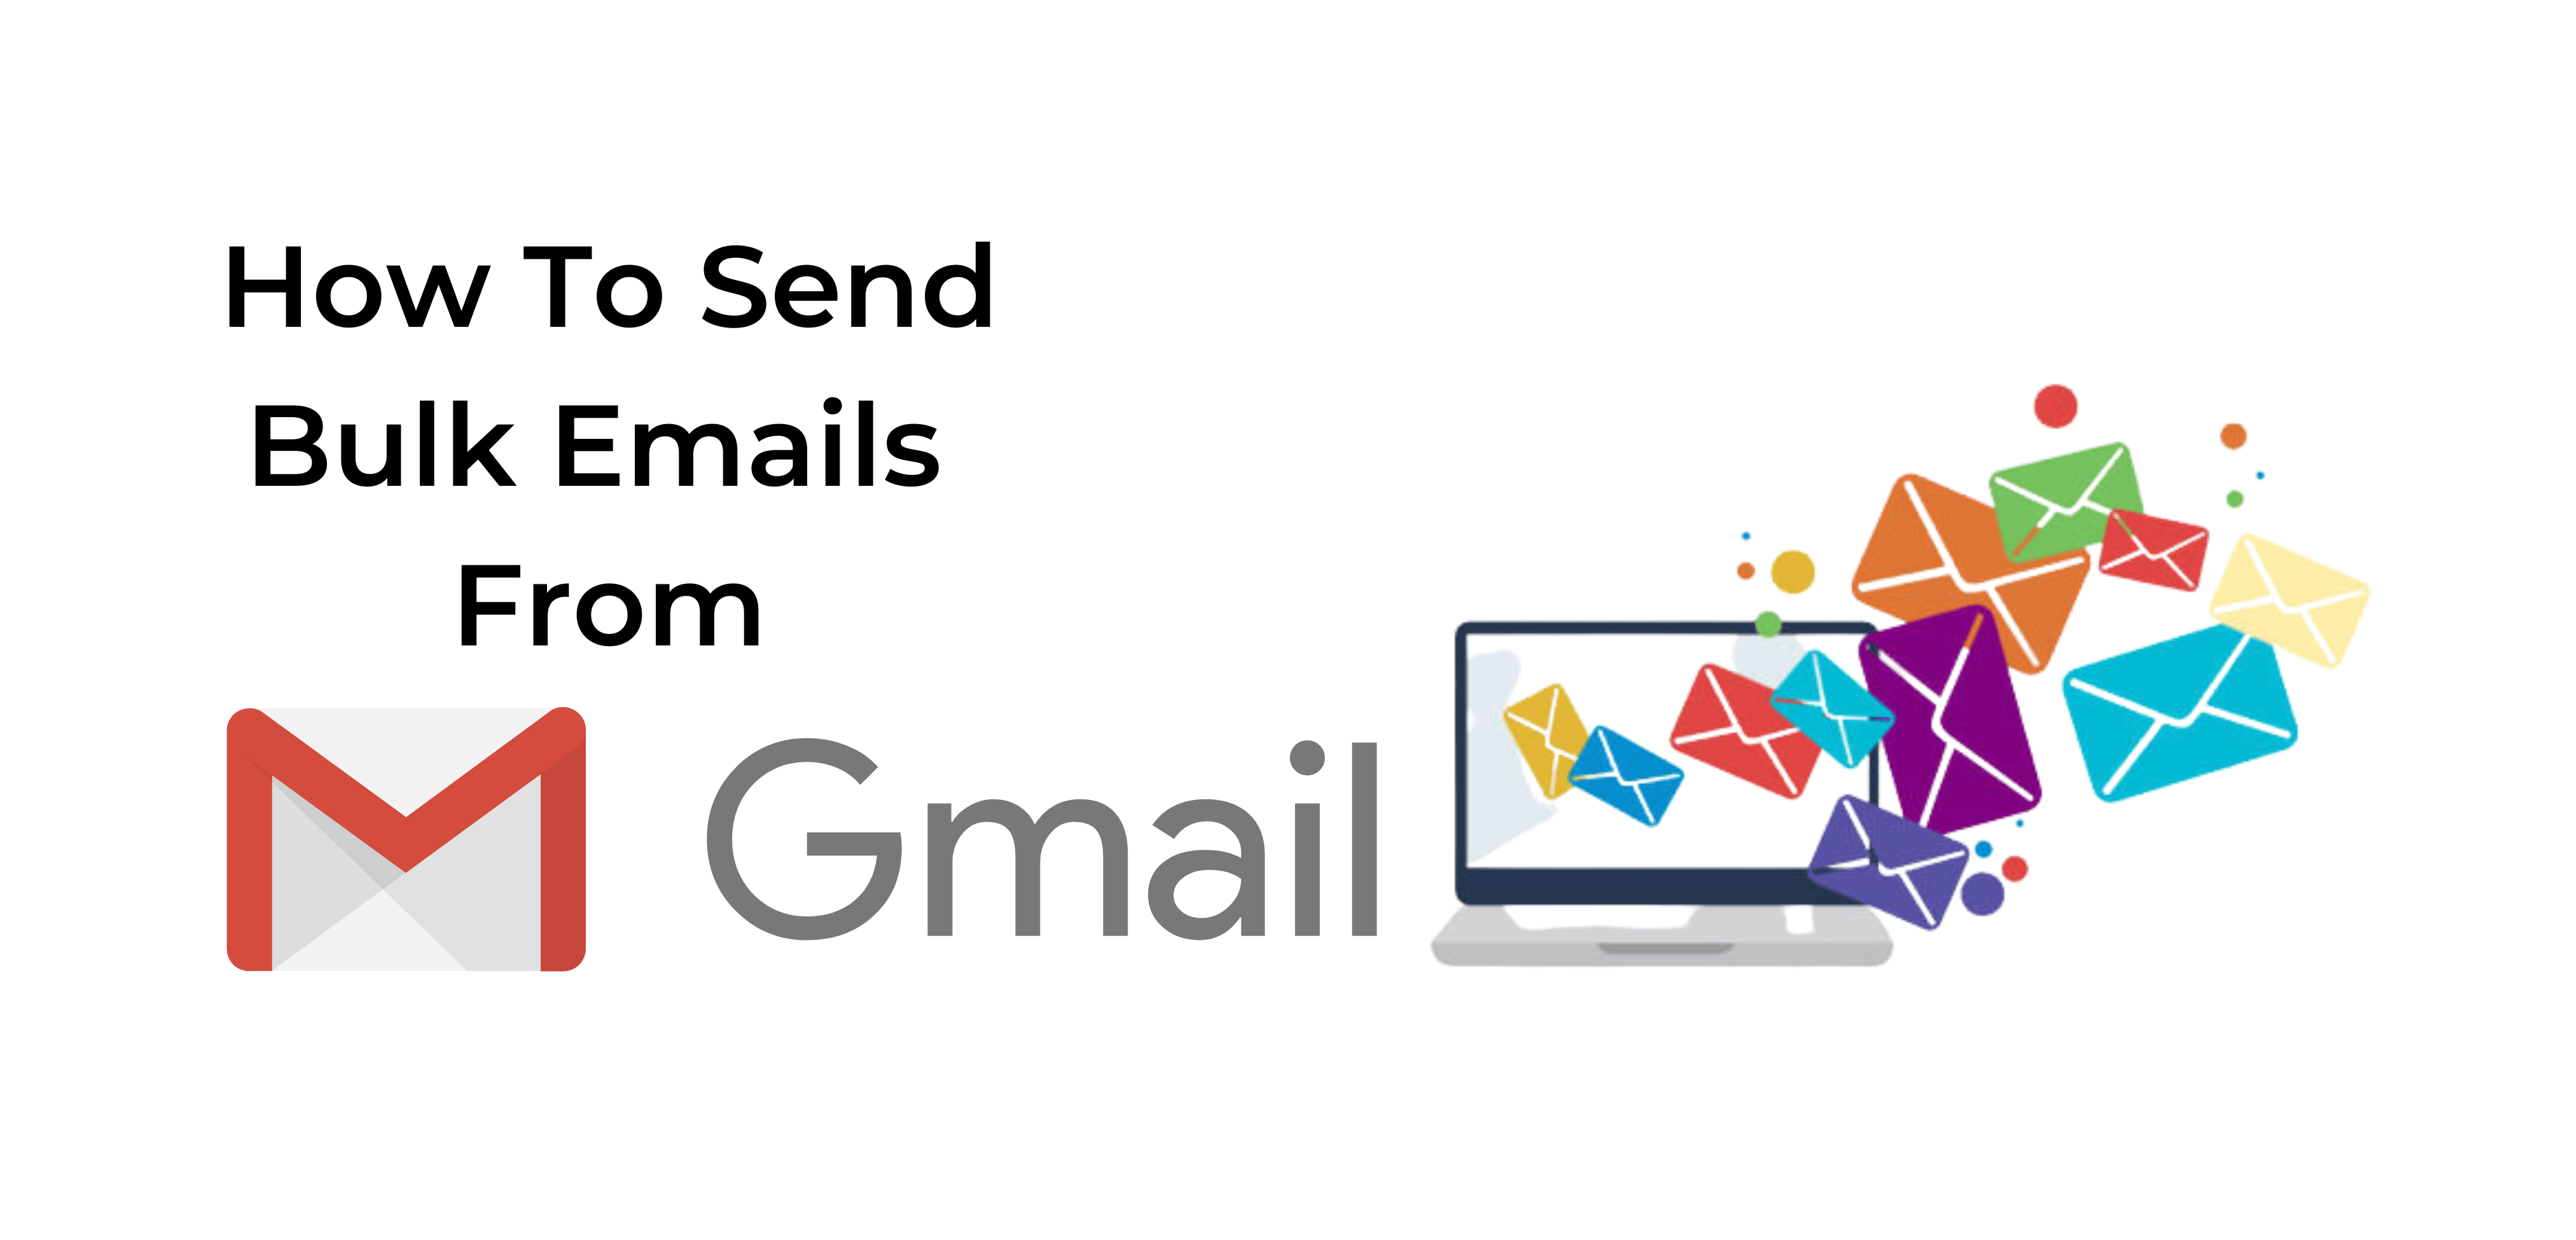 How to Send Bulk Emails from Gmail?